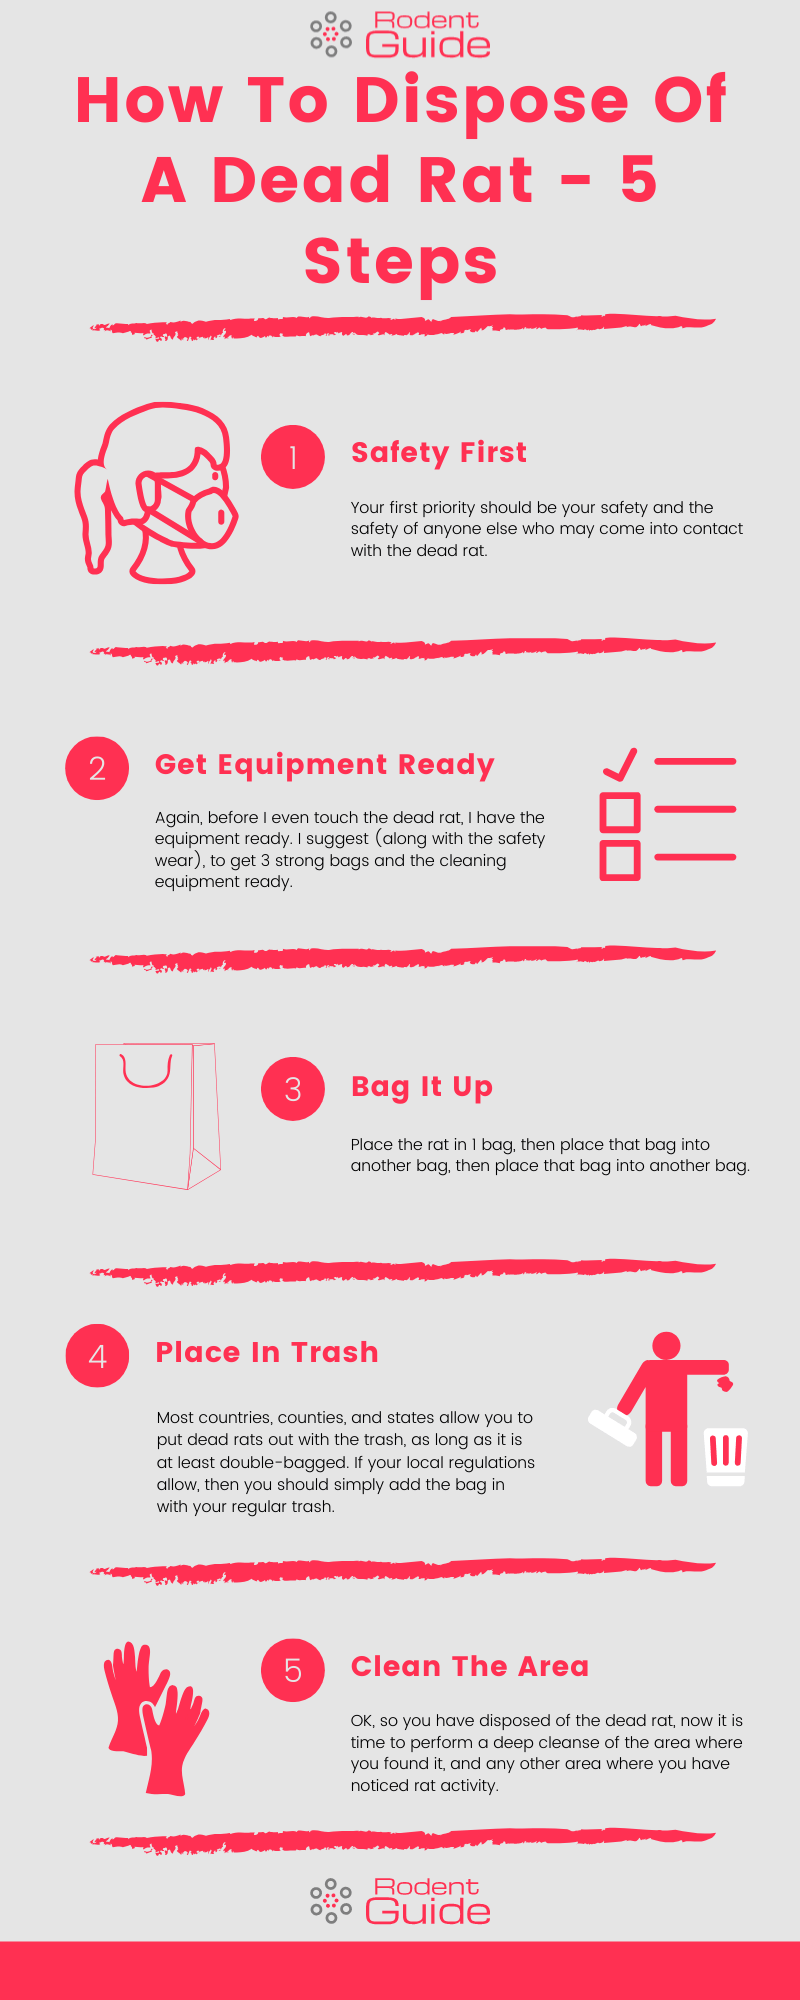 How To Dispose Of A Dead Rat Infographic